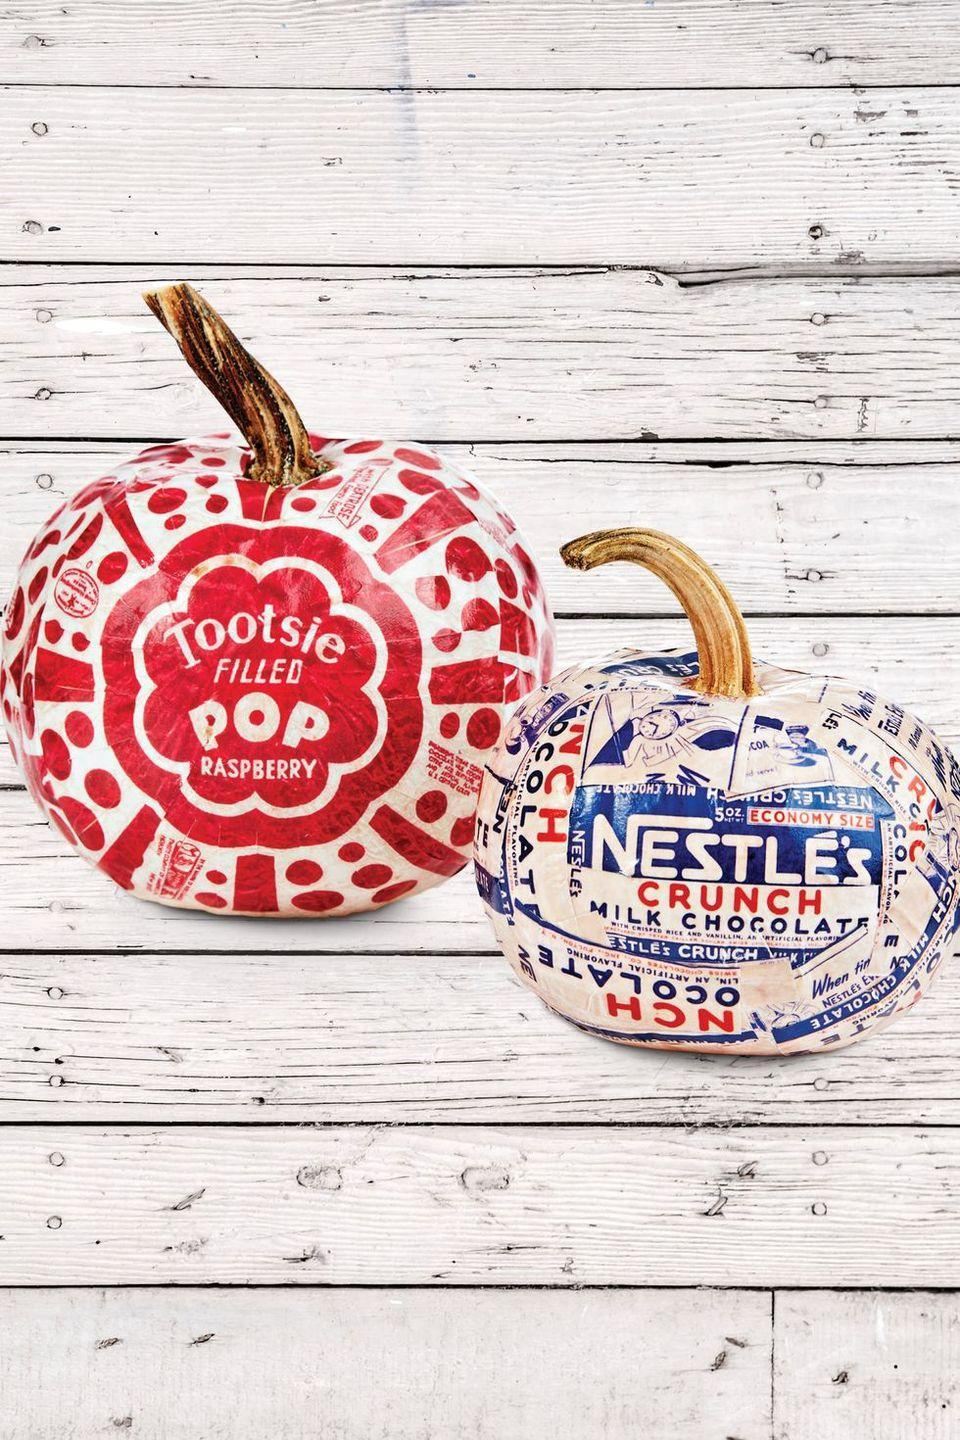 "<p>Give your pumpkins a sweet makeover by adorning them with candy wrappers this Halloween. Print copies of your favorite candy labels from Pinterest and cut them into 1-inch strips. Attach the labels to the pumpkins with Mod Podge. </p><p><a class=""link rapid-noclick-resp"" href=""https://www.amazon.com/Mod-Podge-Waterbase-8-Ounce-CS11301/dp/B000HWY6EM/?tag=syn-yahoo-20&ascsubtag=%5Bartid%7C10055.g.1714%5Bsrc%7Cyahoo-us"" rel=""nofollow noopener"" target=""_blank"" data-ylk=""slk:SHOP MOD PODGE"">SHOP MOD PODGE</a></p>"